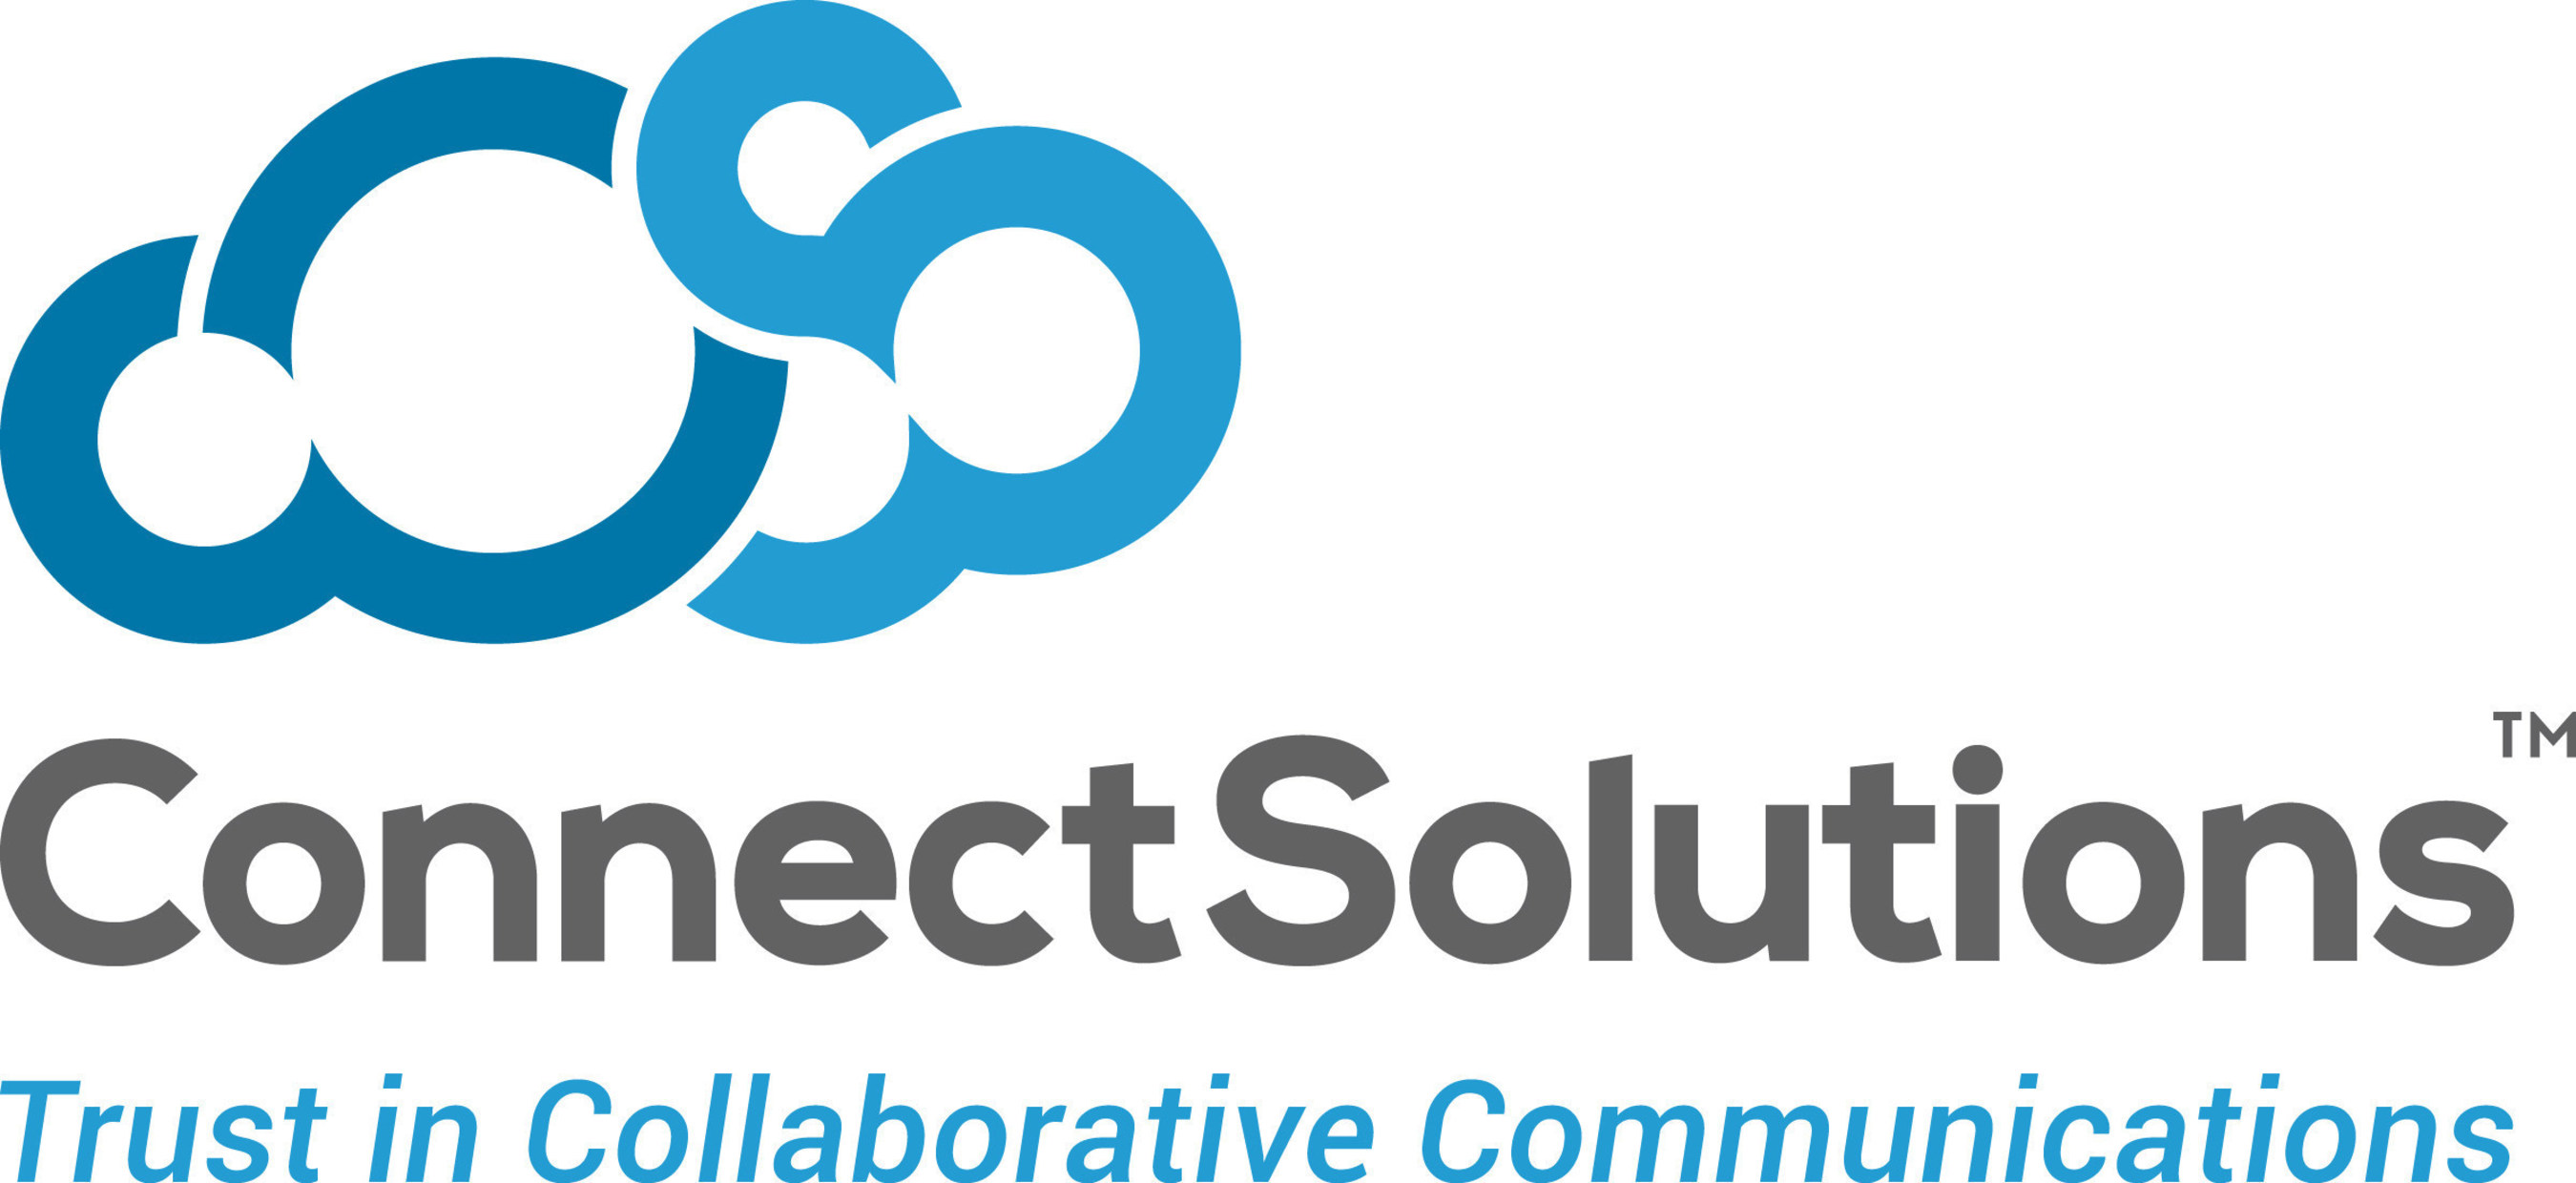 ConnectSolutions Survey Shows Working Remotely Benefits Employers and Employees